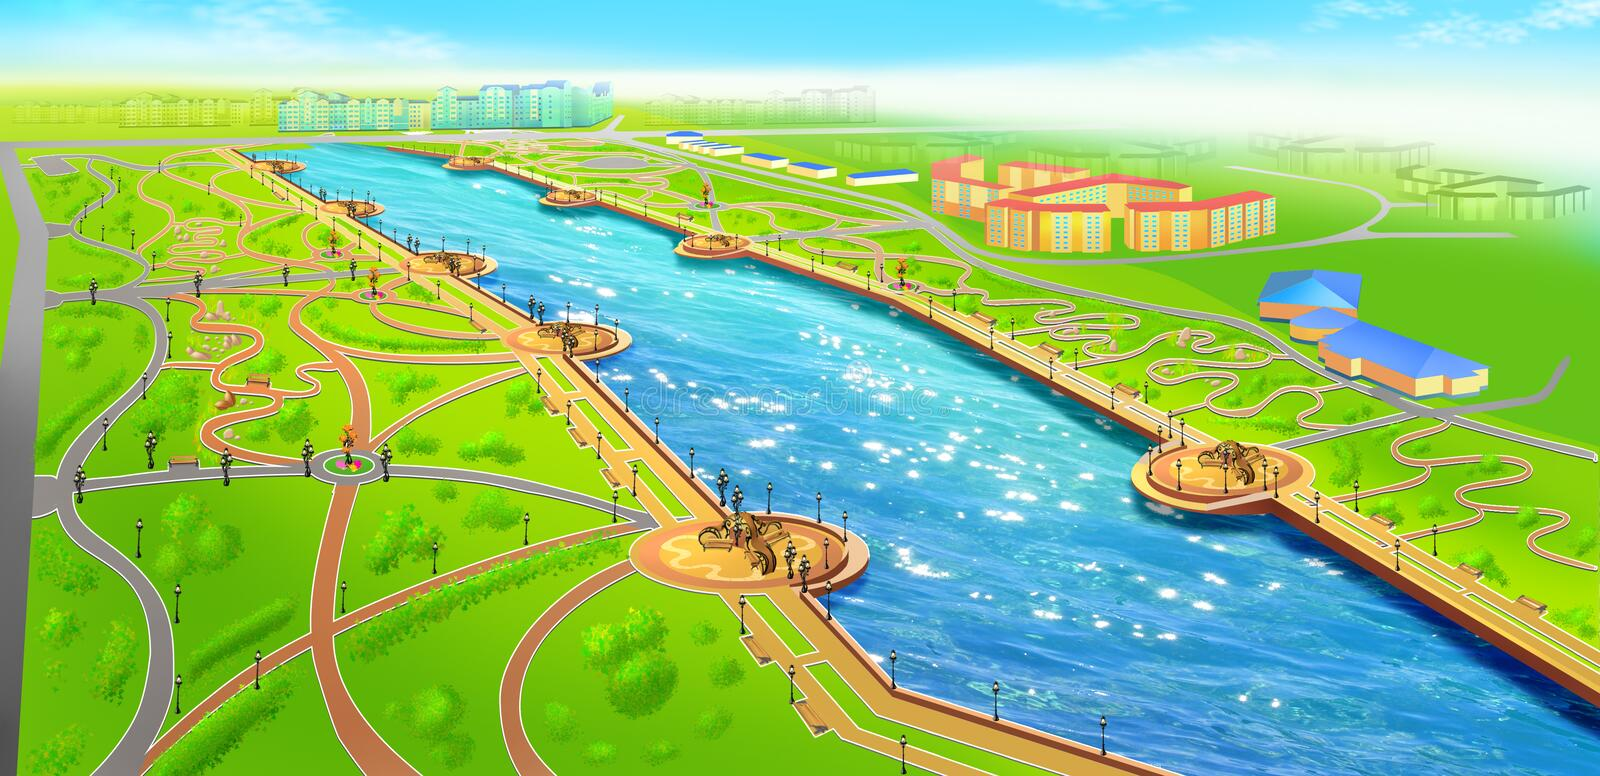 Download Landscape Of Recreational Area Near The River Stock Illustration - Image: 21128783